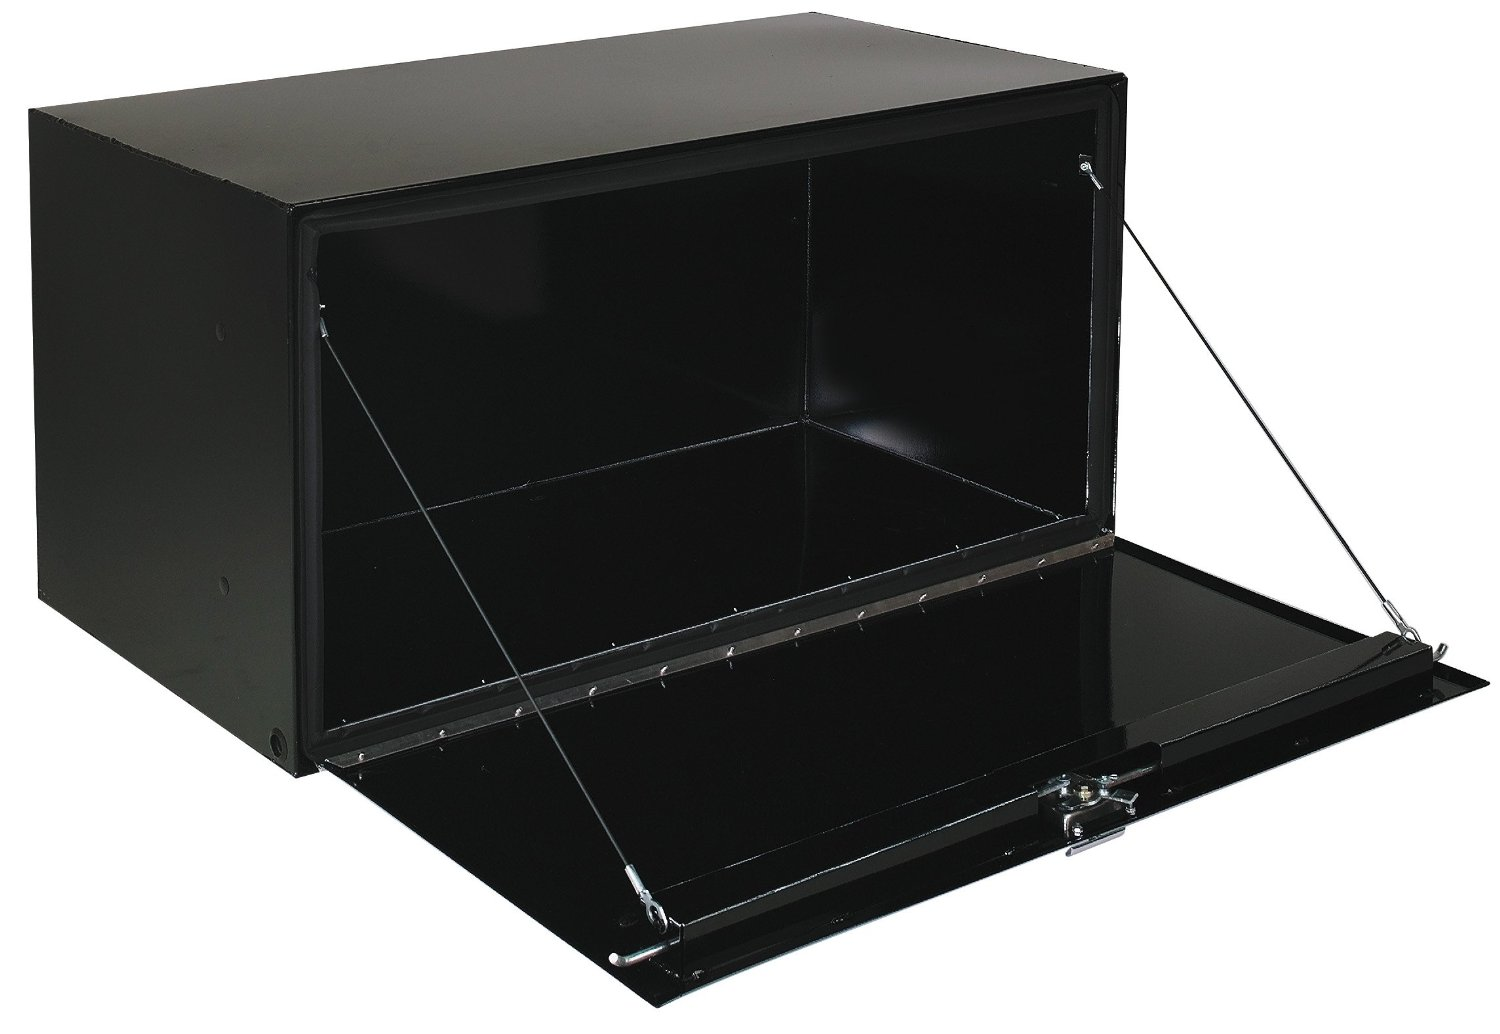 "Tool Box For Truck: Delta Pro 36"" X 18"" X 18"" Black Steel Truch Underbed Tool Box"